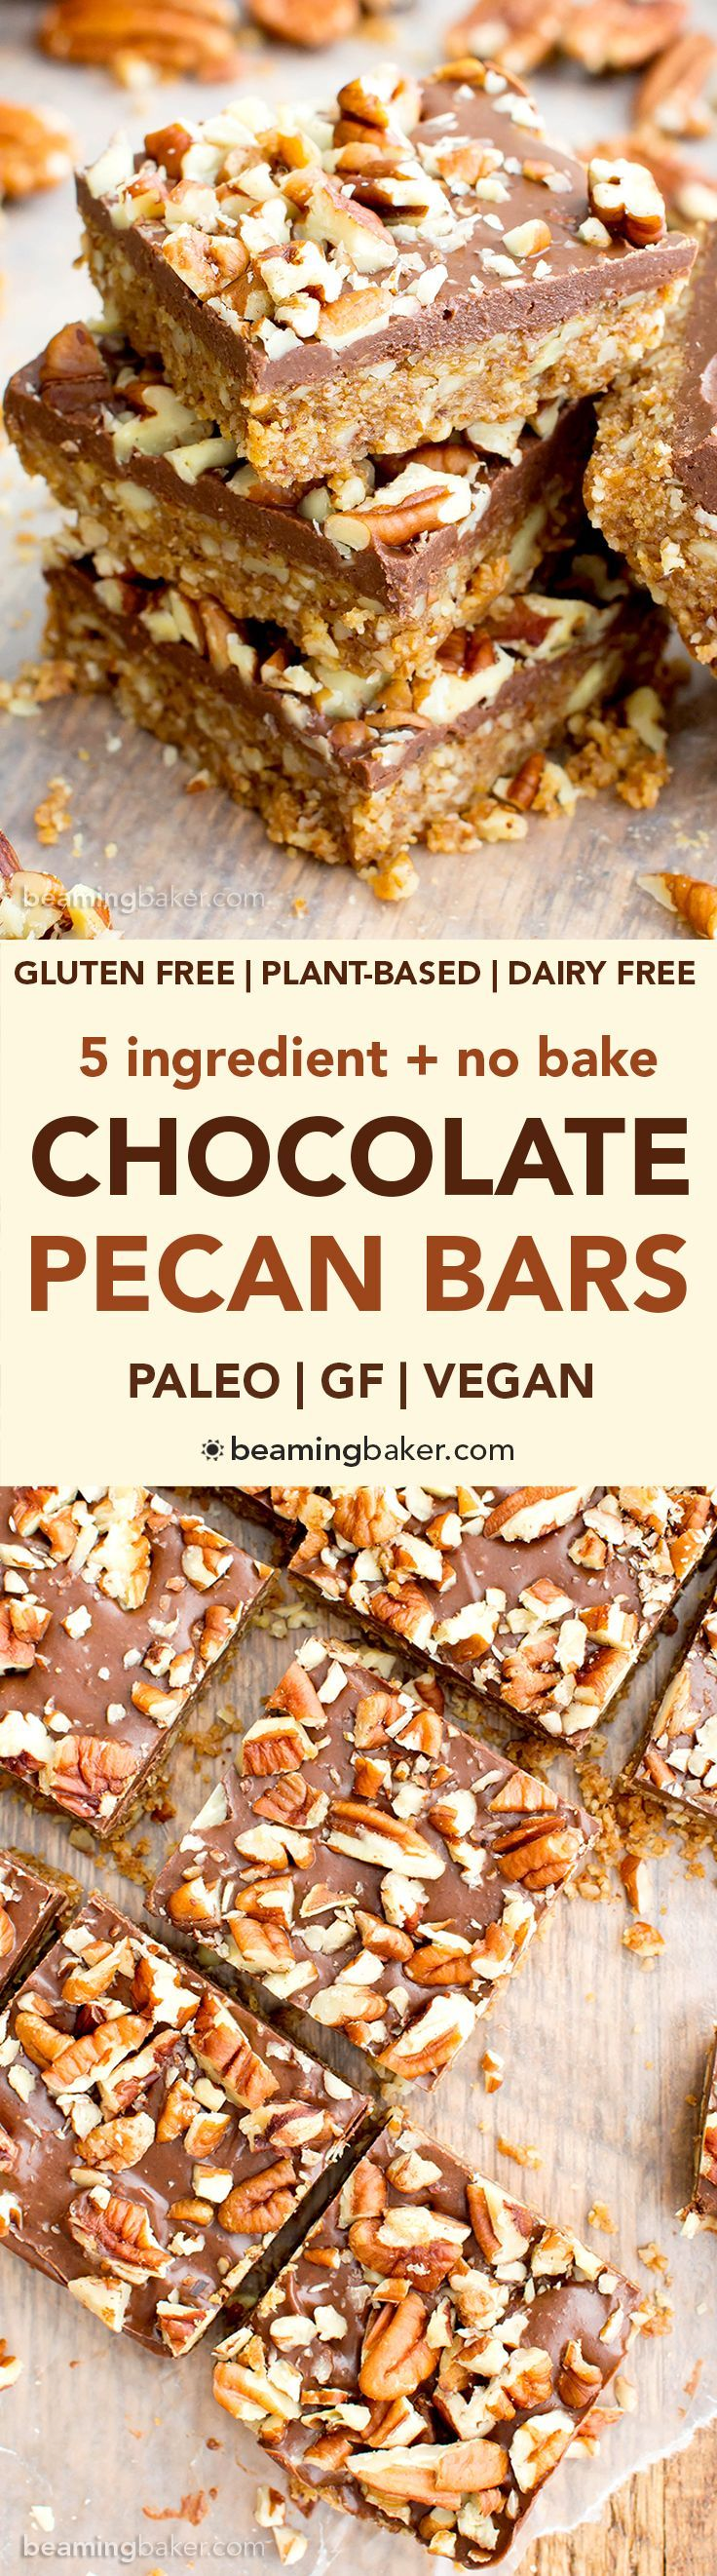 No Bake Paleo Chocolate Pecan Bars (V, GF, Paleo): a 5-ingredient, no bake recipe for deliciously textured pecan bars topped with a thick layer of chocolate and nuts.